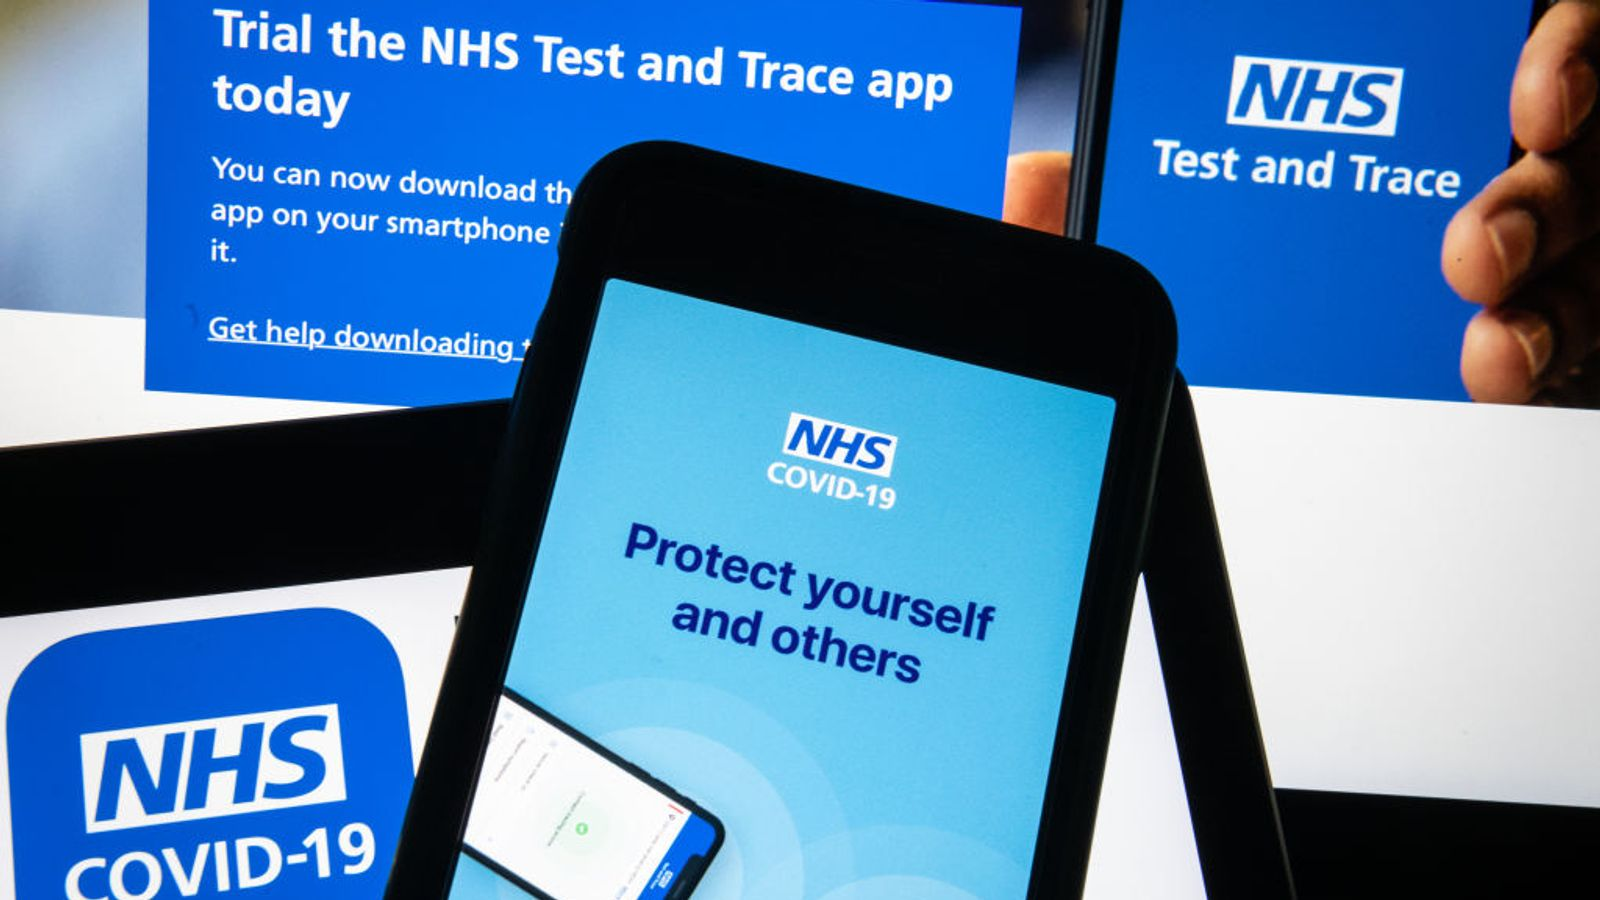 Coronavirus: Download NHS contact tracing app to 'make country a safer place', health secretary urges